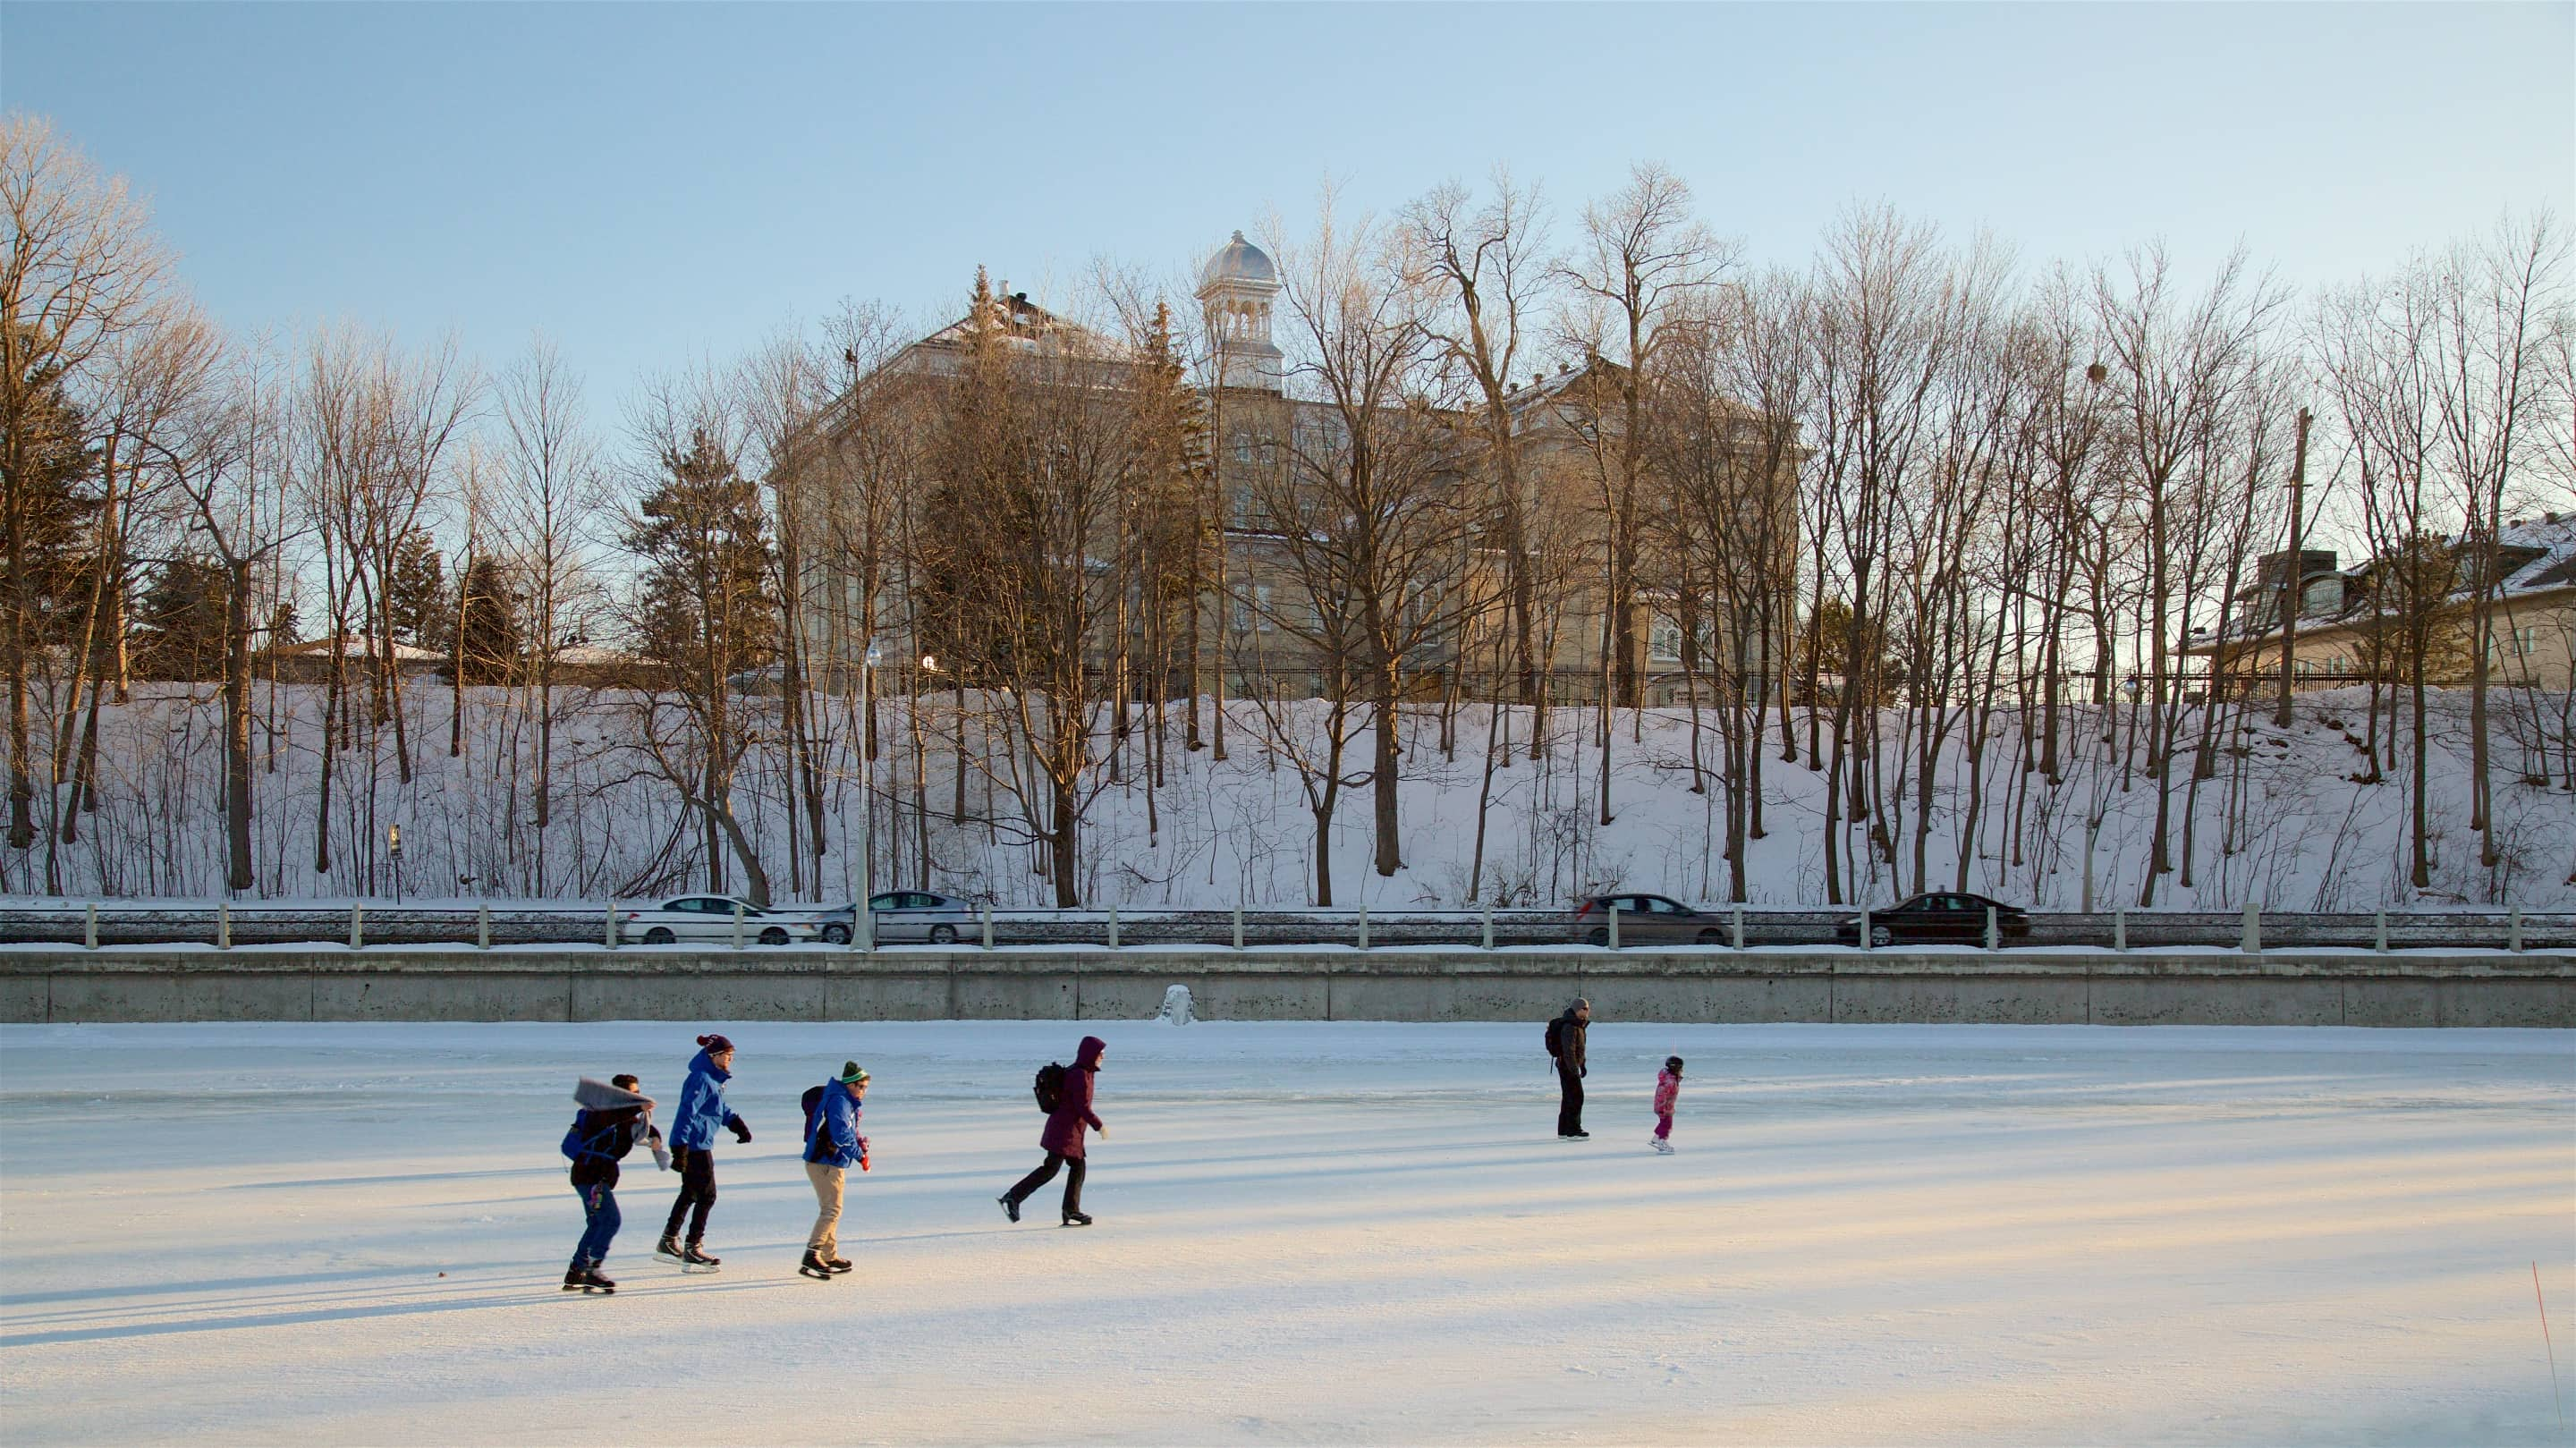 People ice skating on a frozen canal